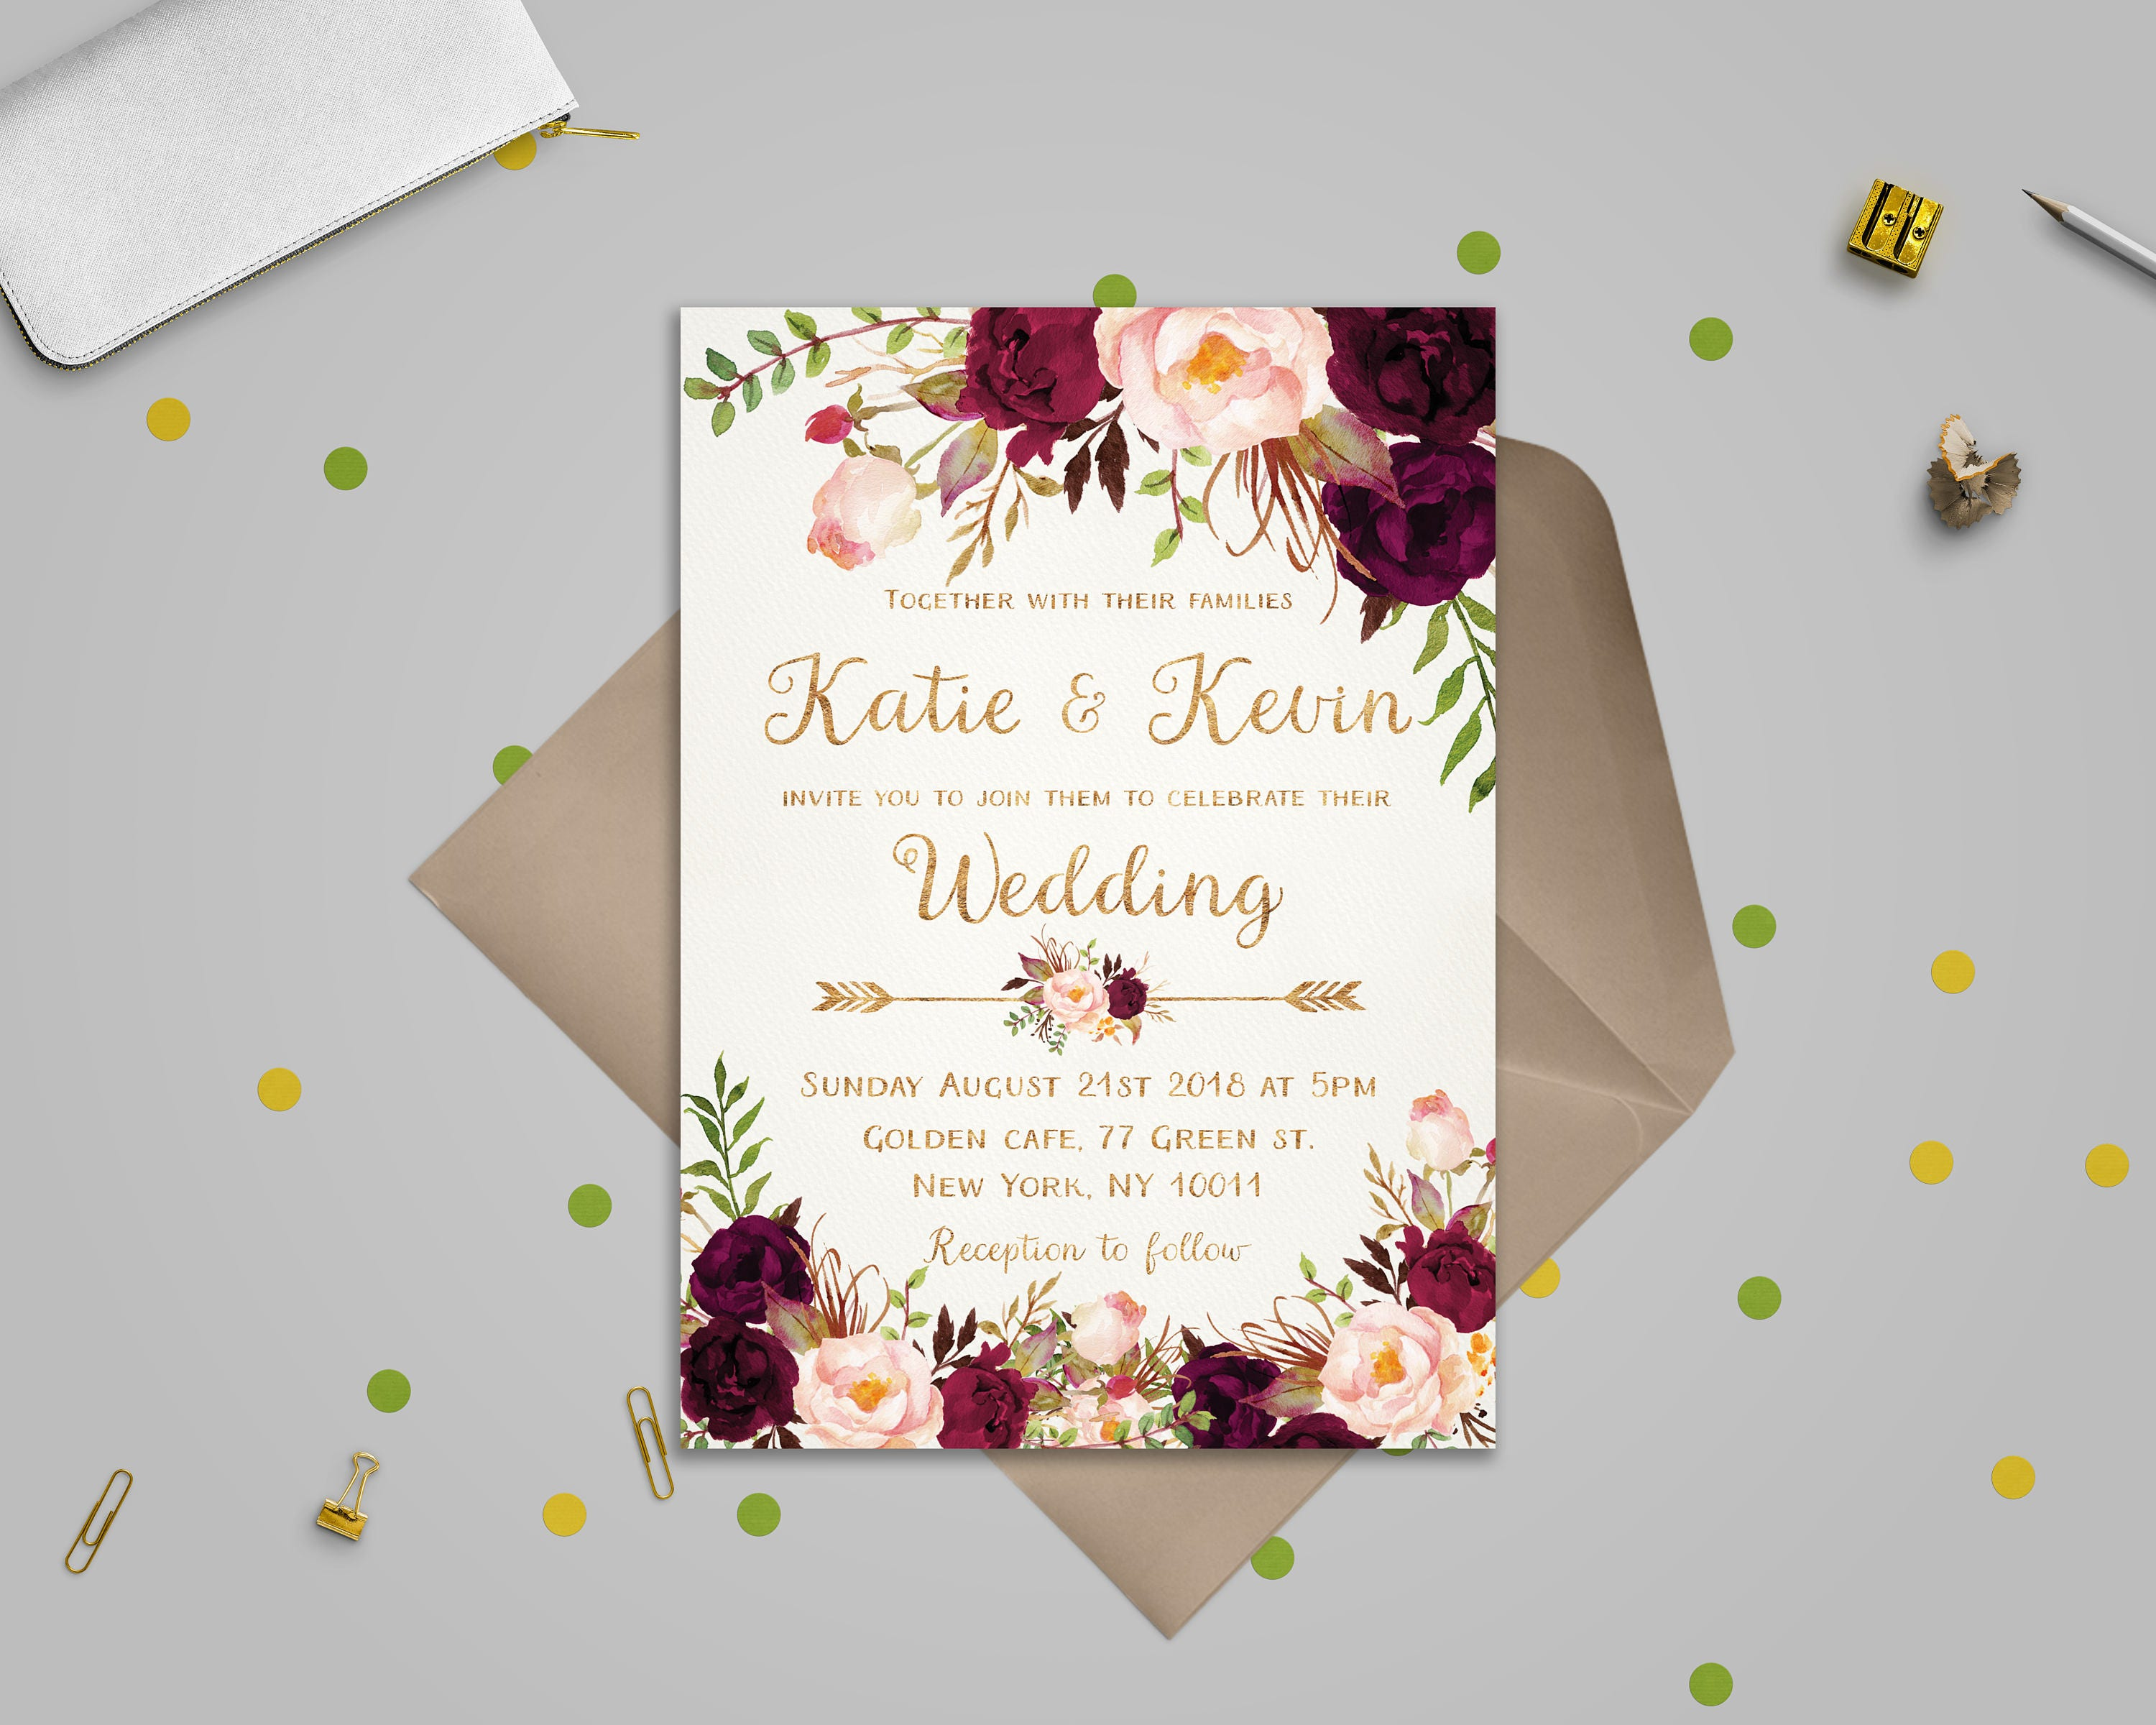 Design Your Own Wedding Invitations Template: Floral Wedding Invitation Template Wedding Invitation